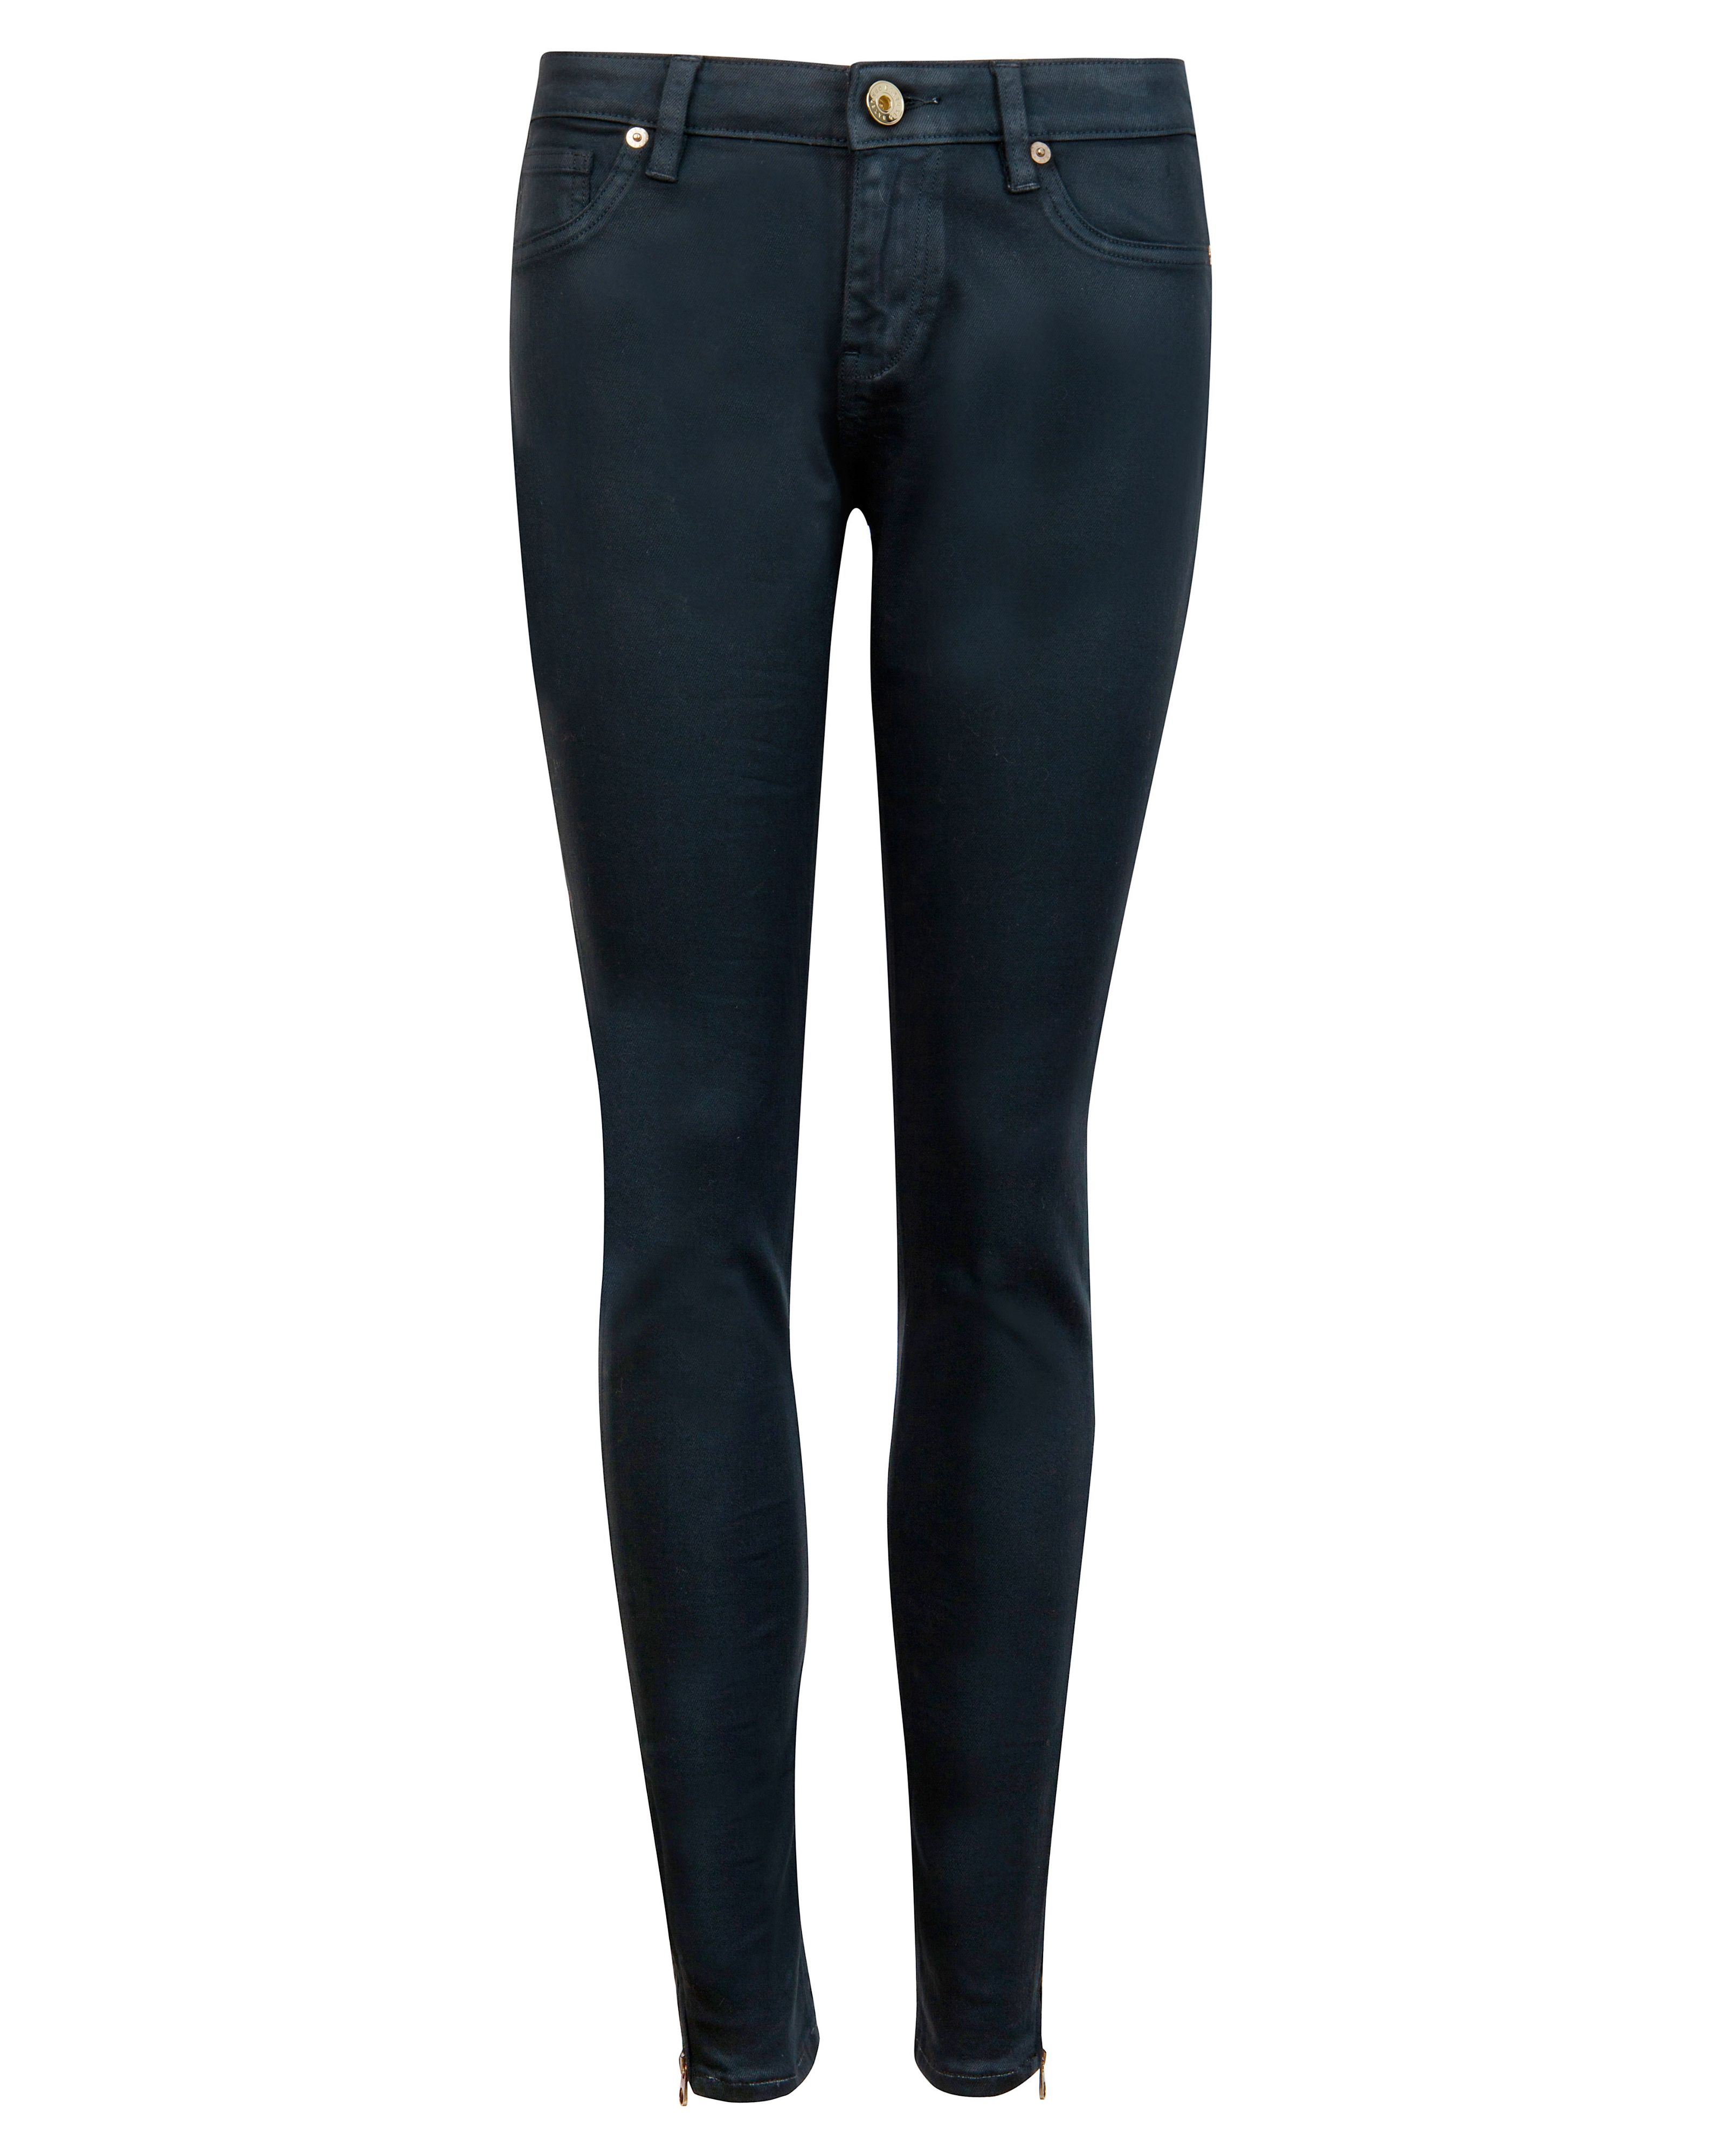 Annna wax finish skinny denim